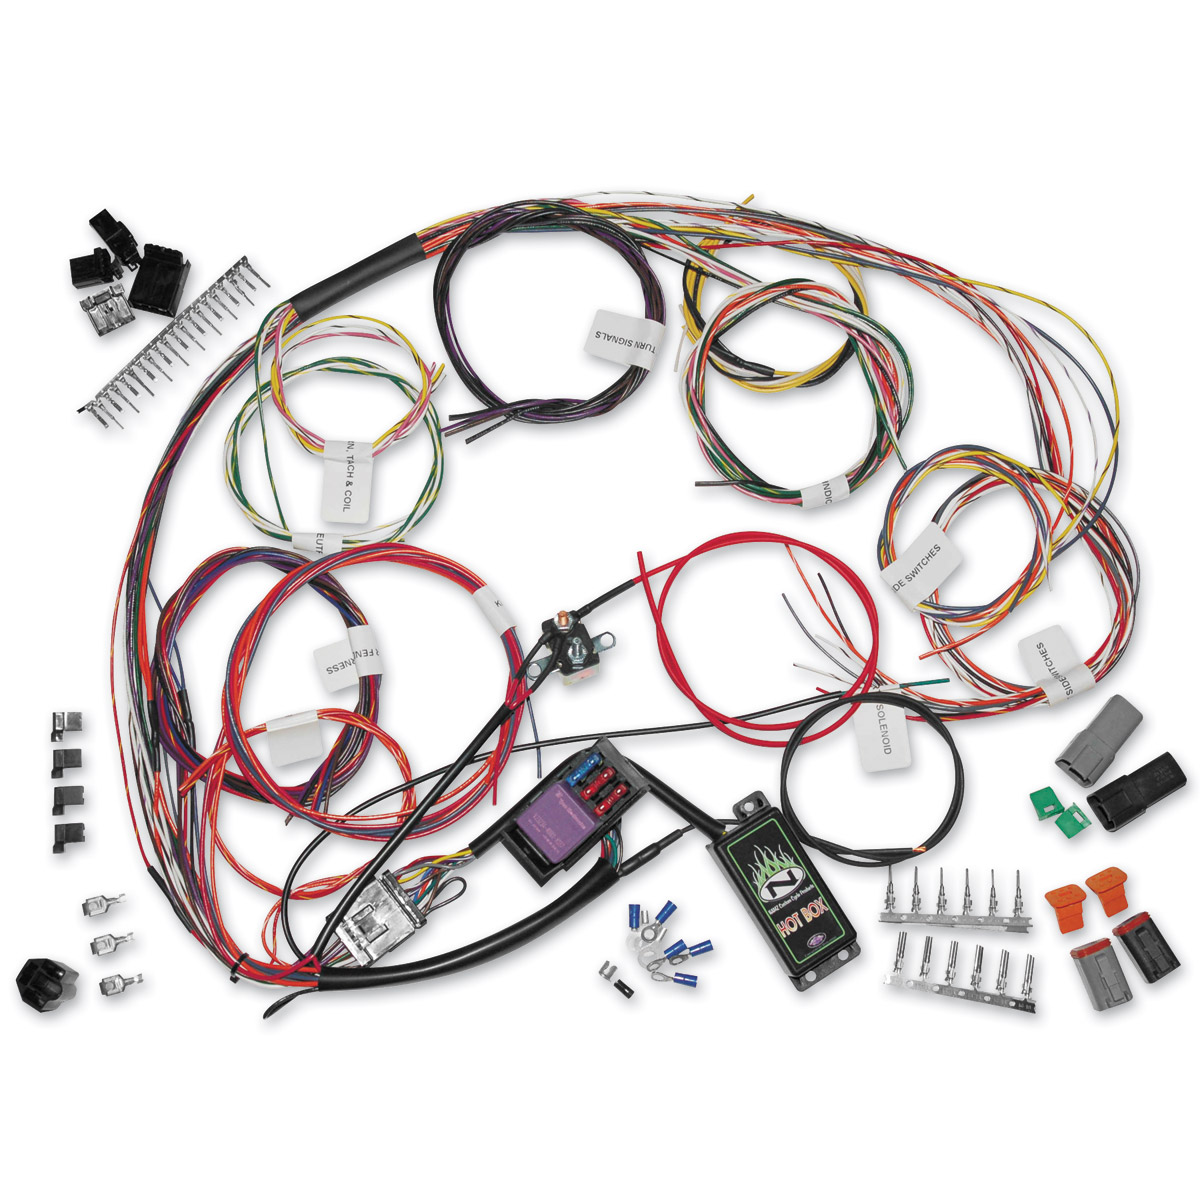 745 072_A harley davidson sportster wiring harness kits j&p cycles 2002 harley softail wiring diagram at soozxer.org